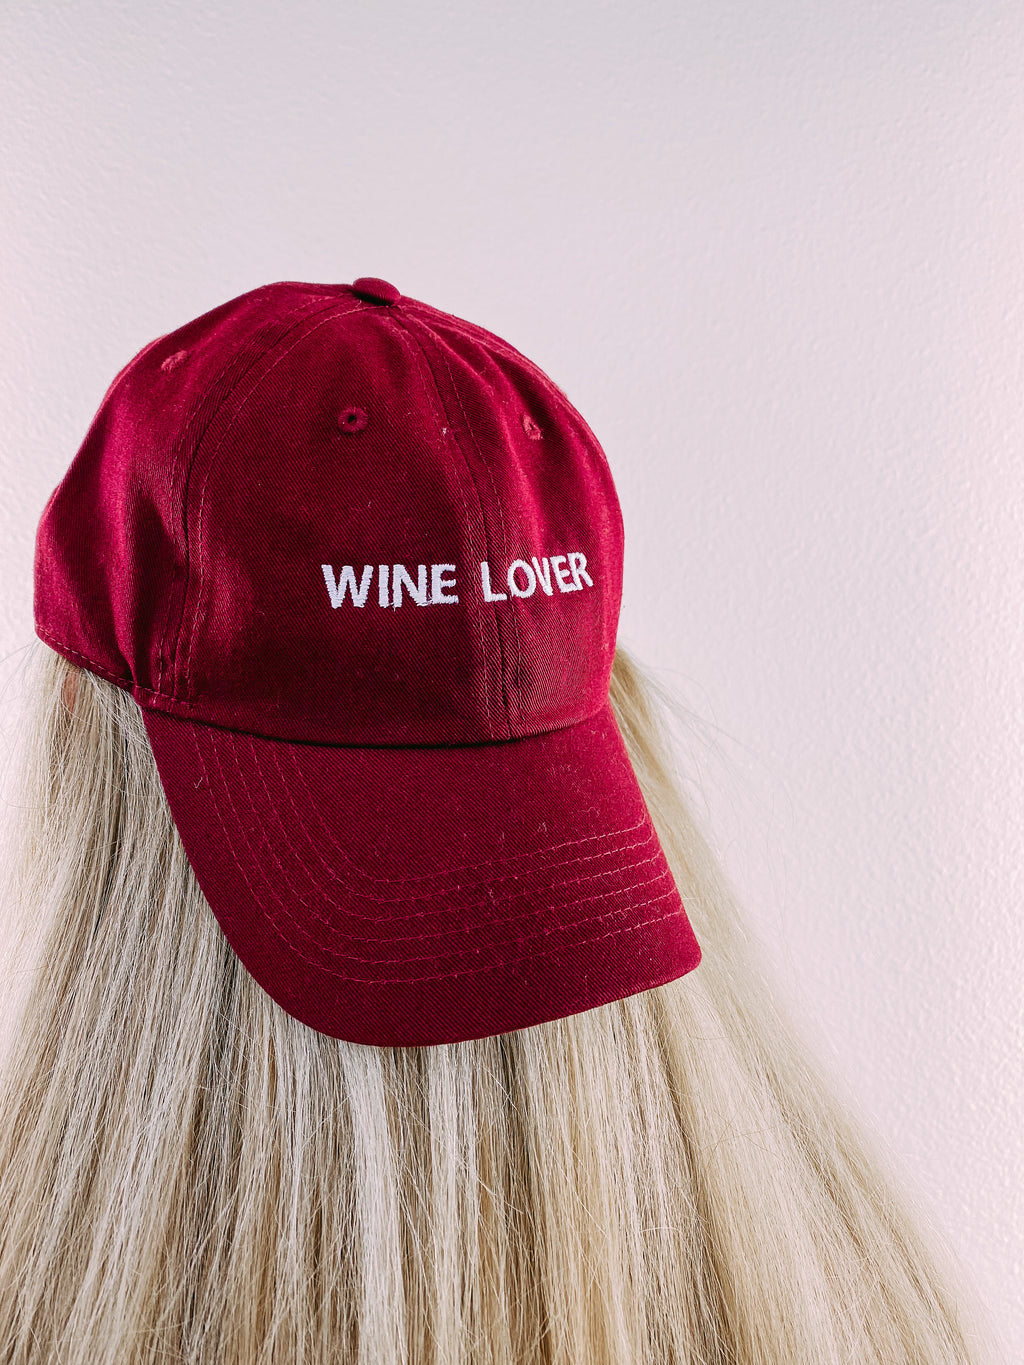 Wine Lover Hat - wine